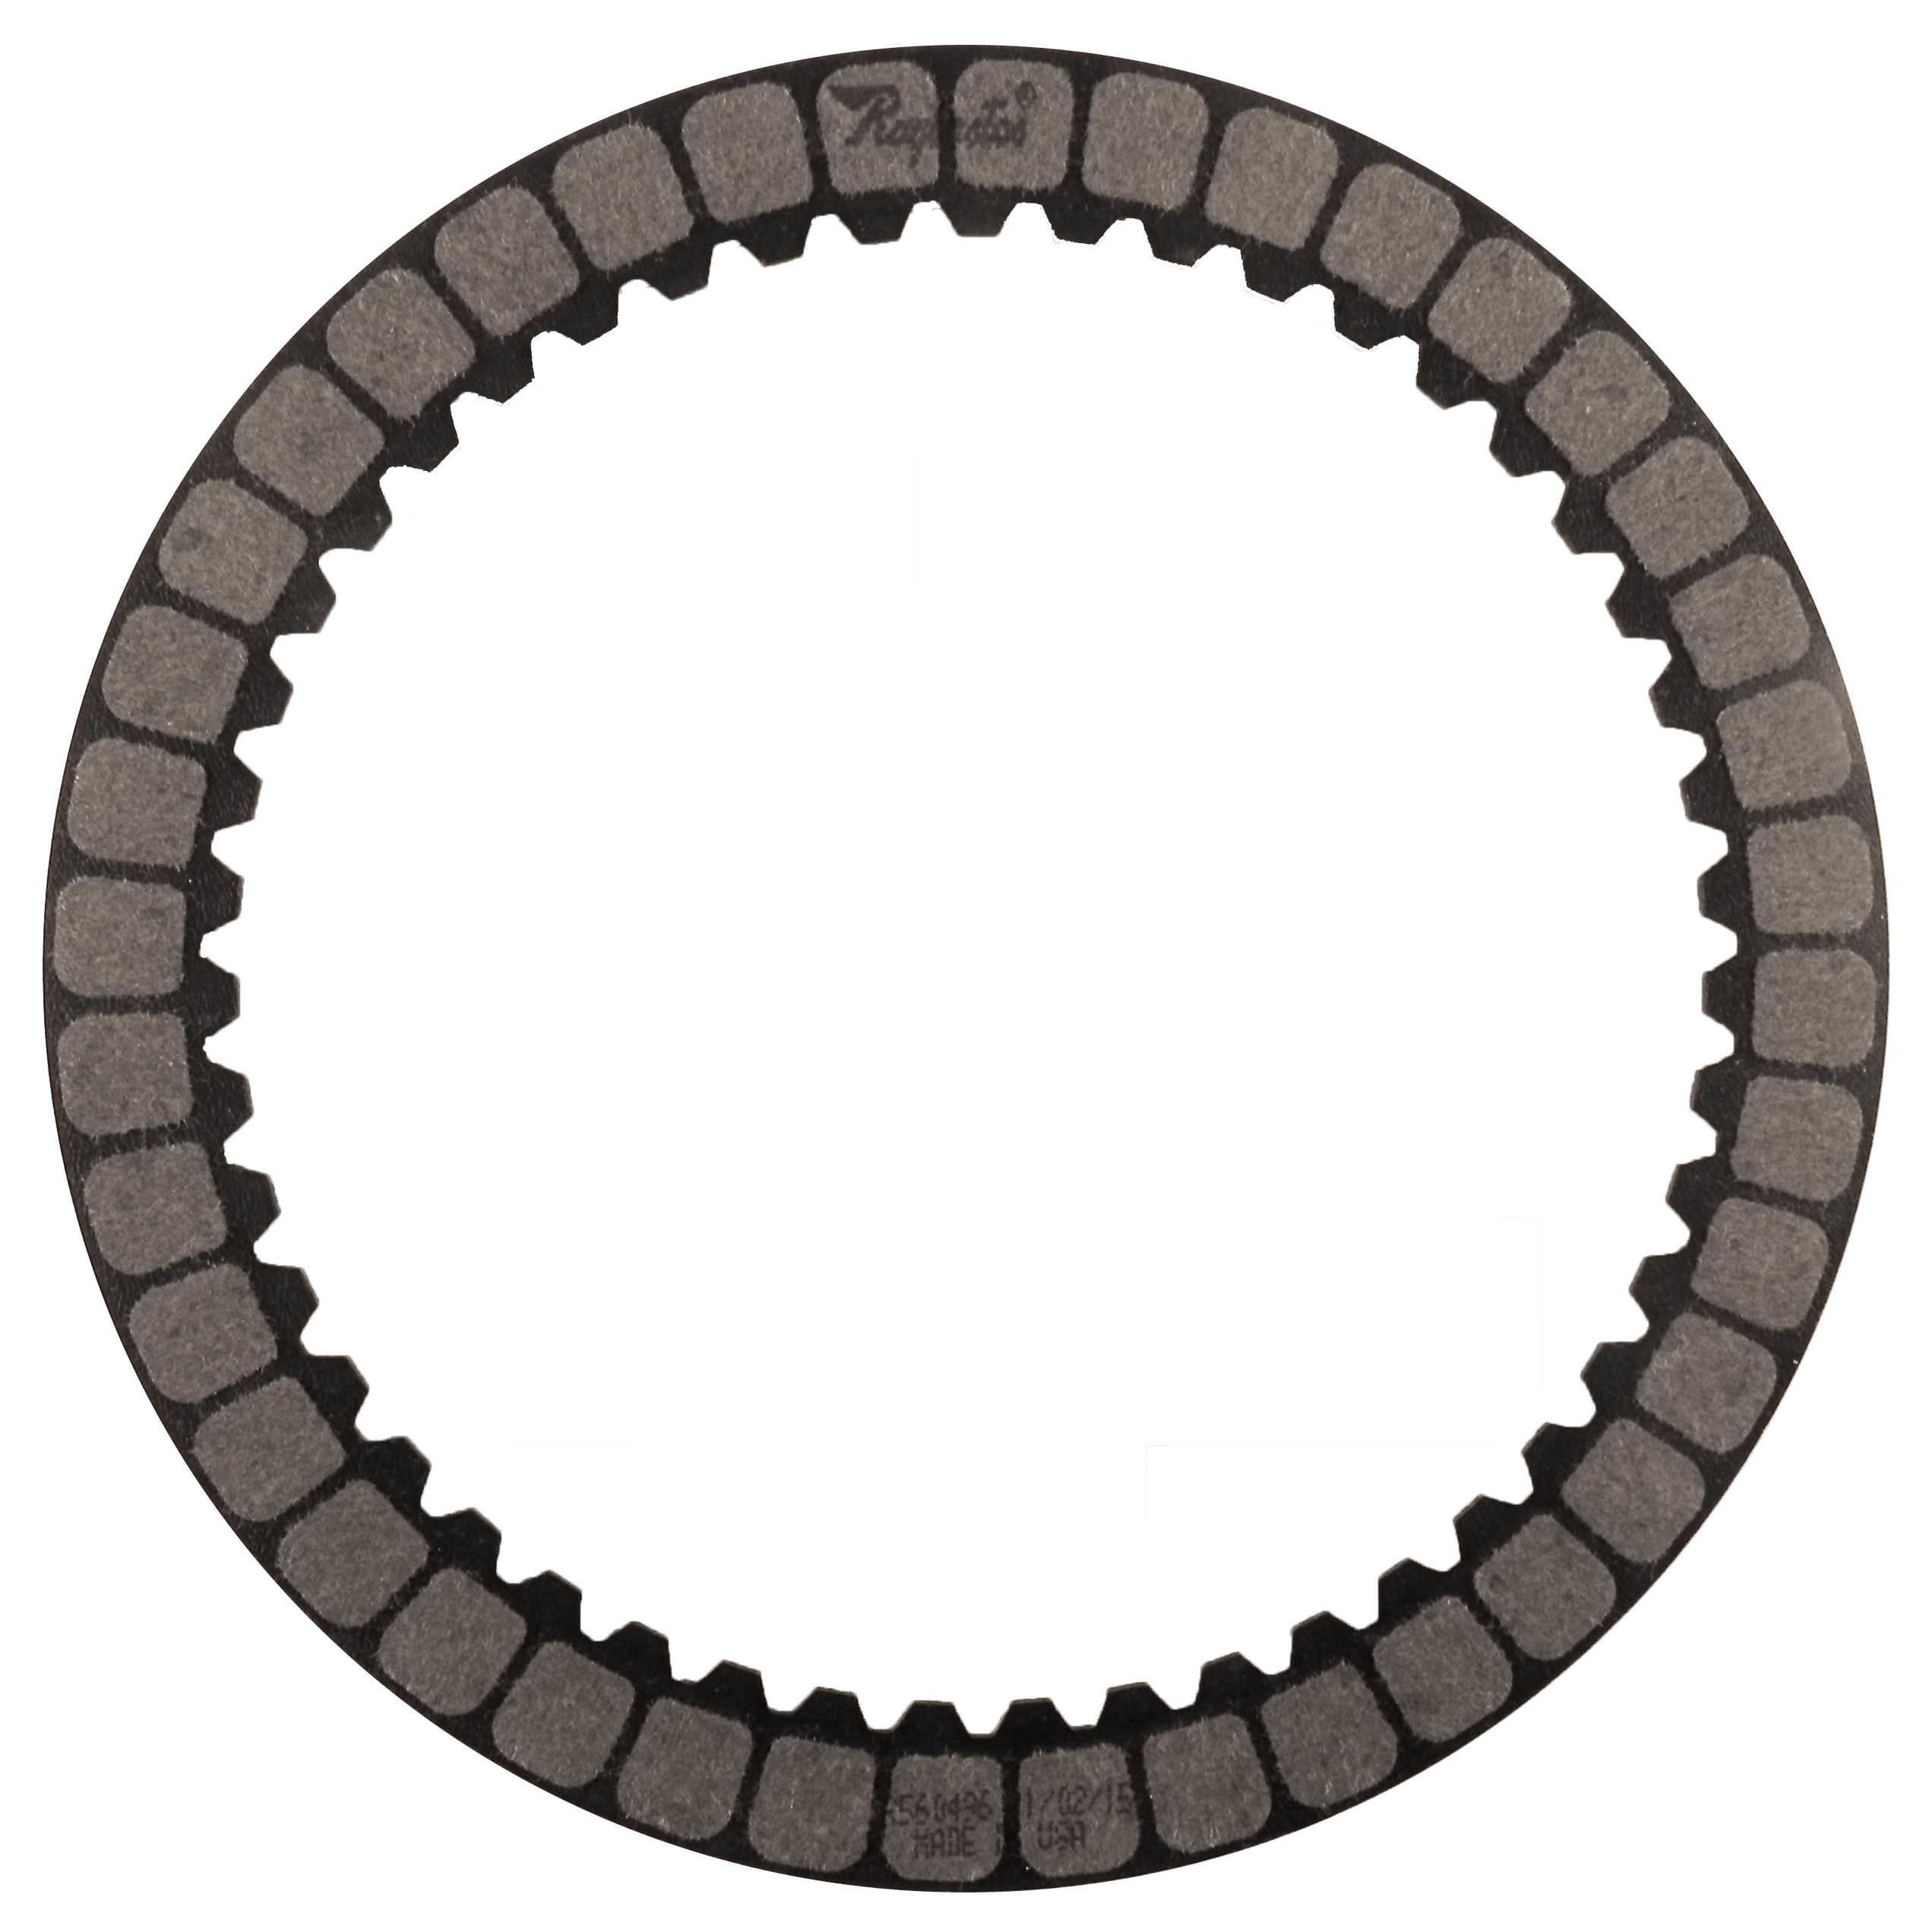 R560496 | 2007-ON Friction Clutch Plate High Energy B2 6th (#2 Brake) High Energy